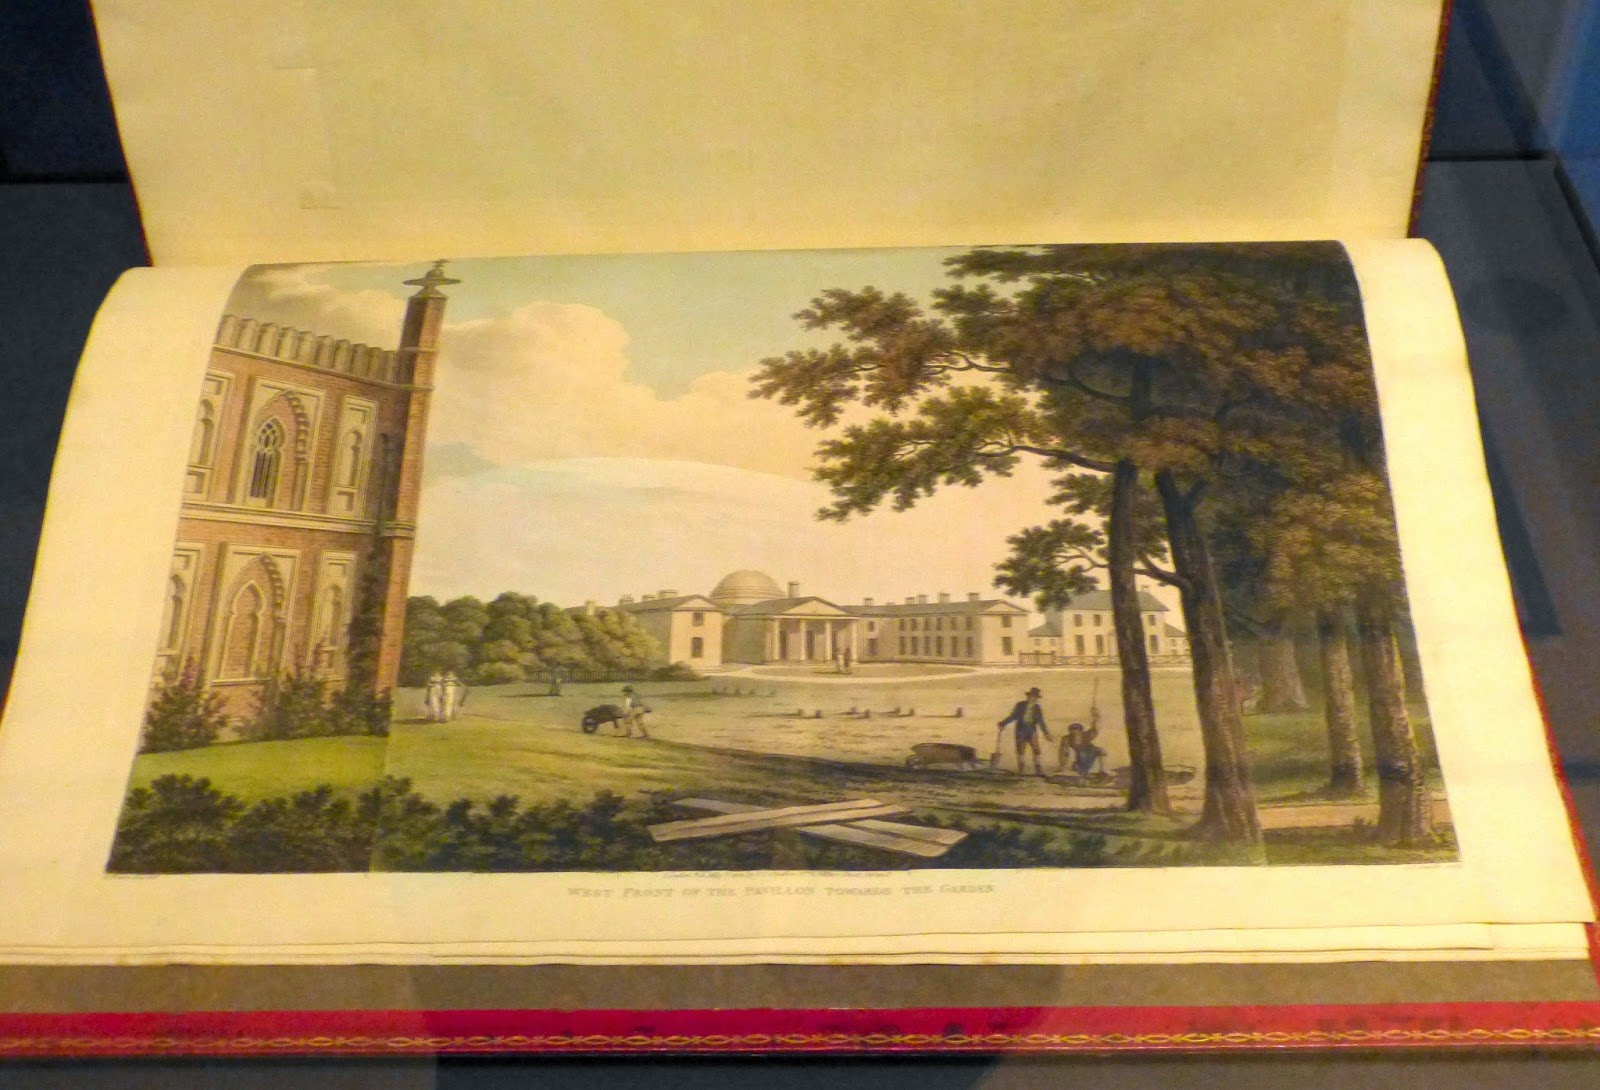 Designs for the Pavilion at Brighton  West Front of the Pavilion  towards the Garden   by Joseph Constantine Stadler after Humphry Repton (1808)